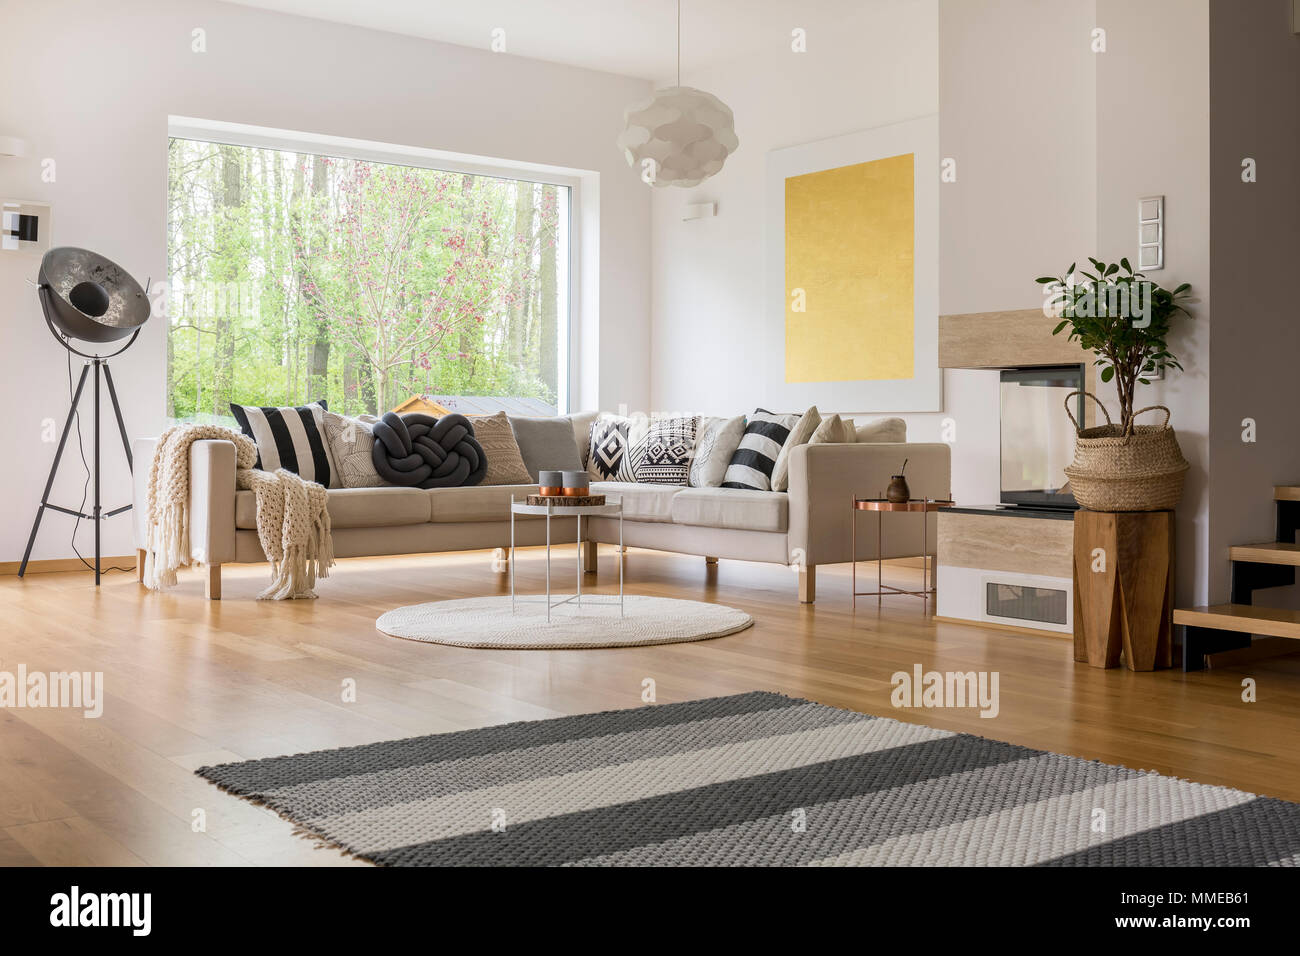 Scandinavian Style Design Of Spacious Modern Living Room With White